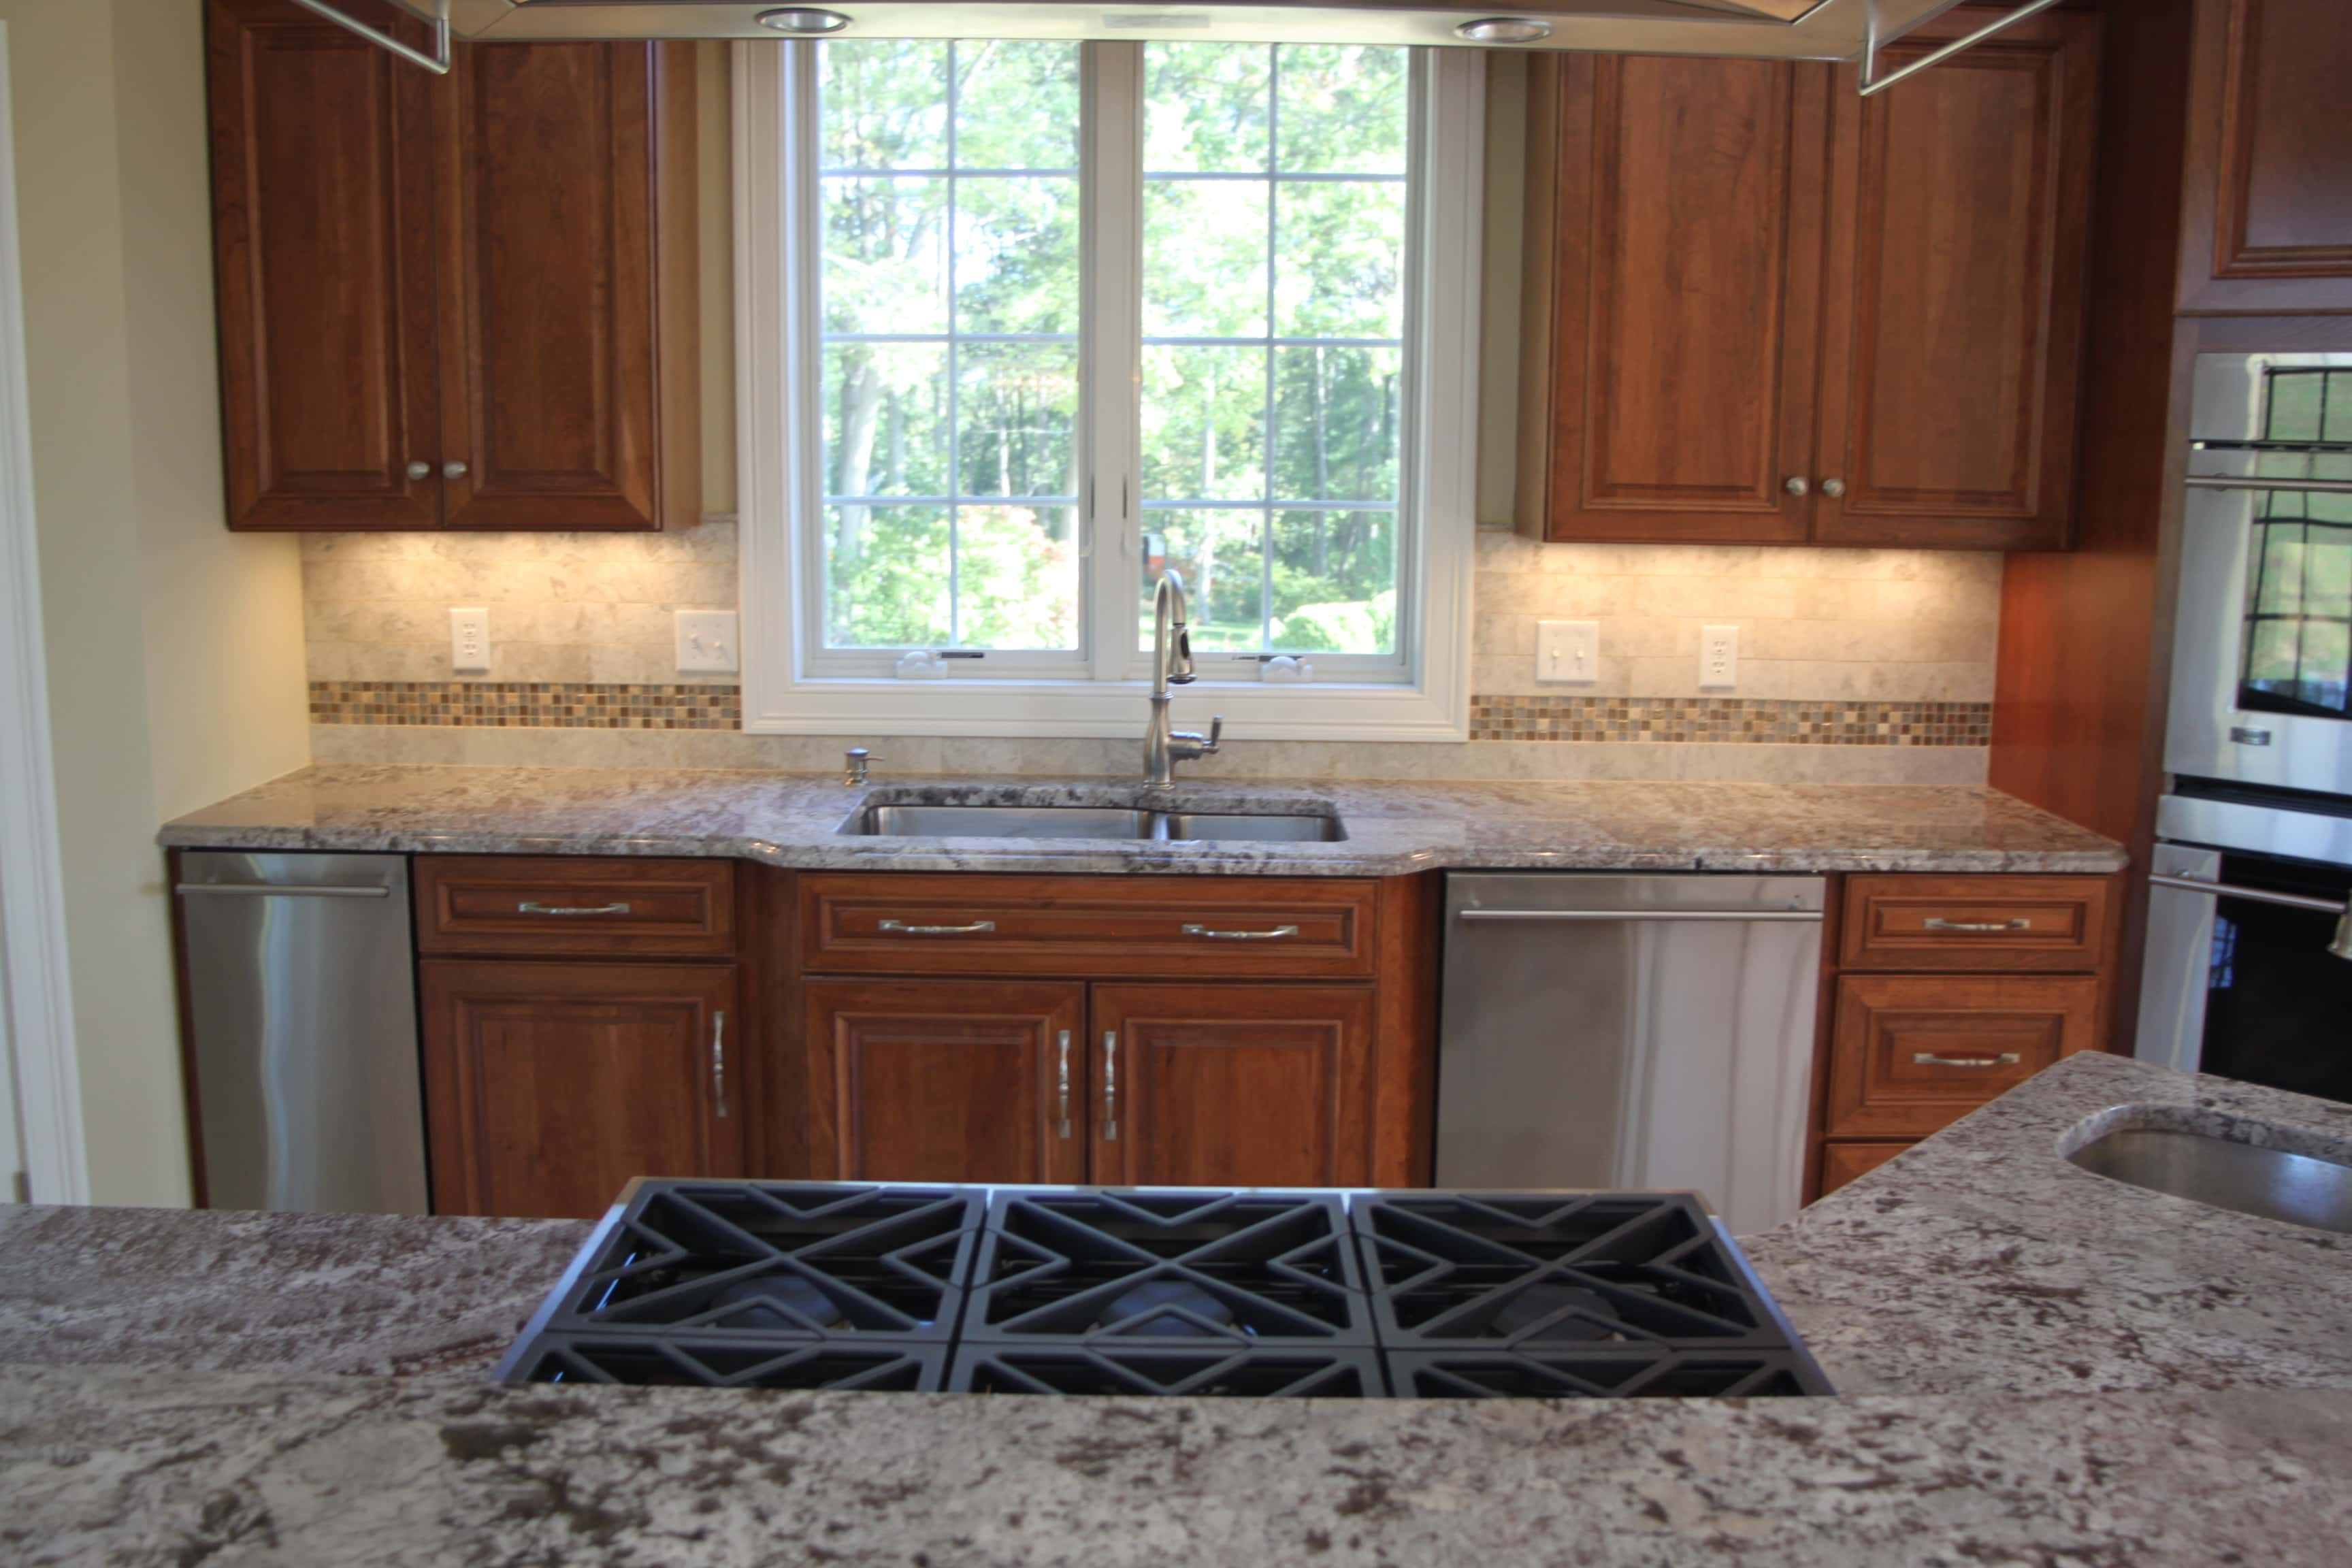 matching countertops to cabinets